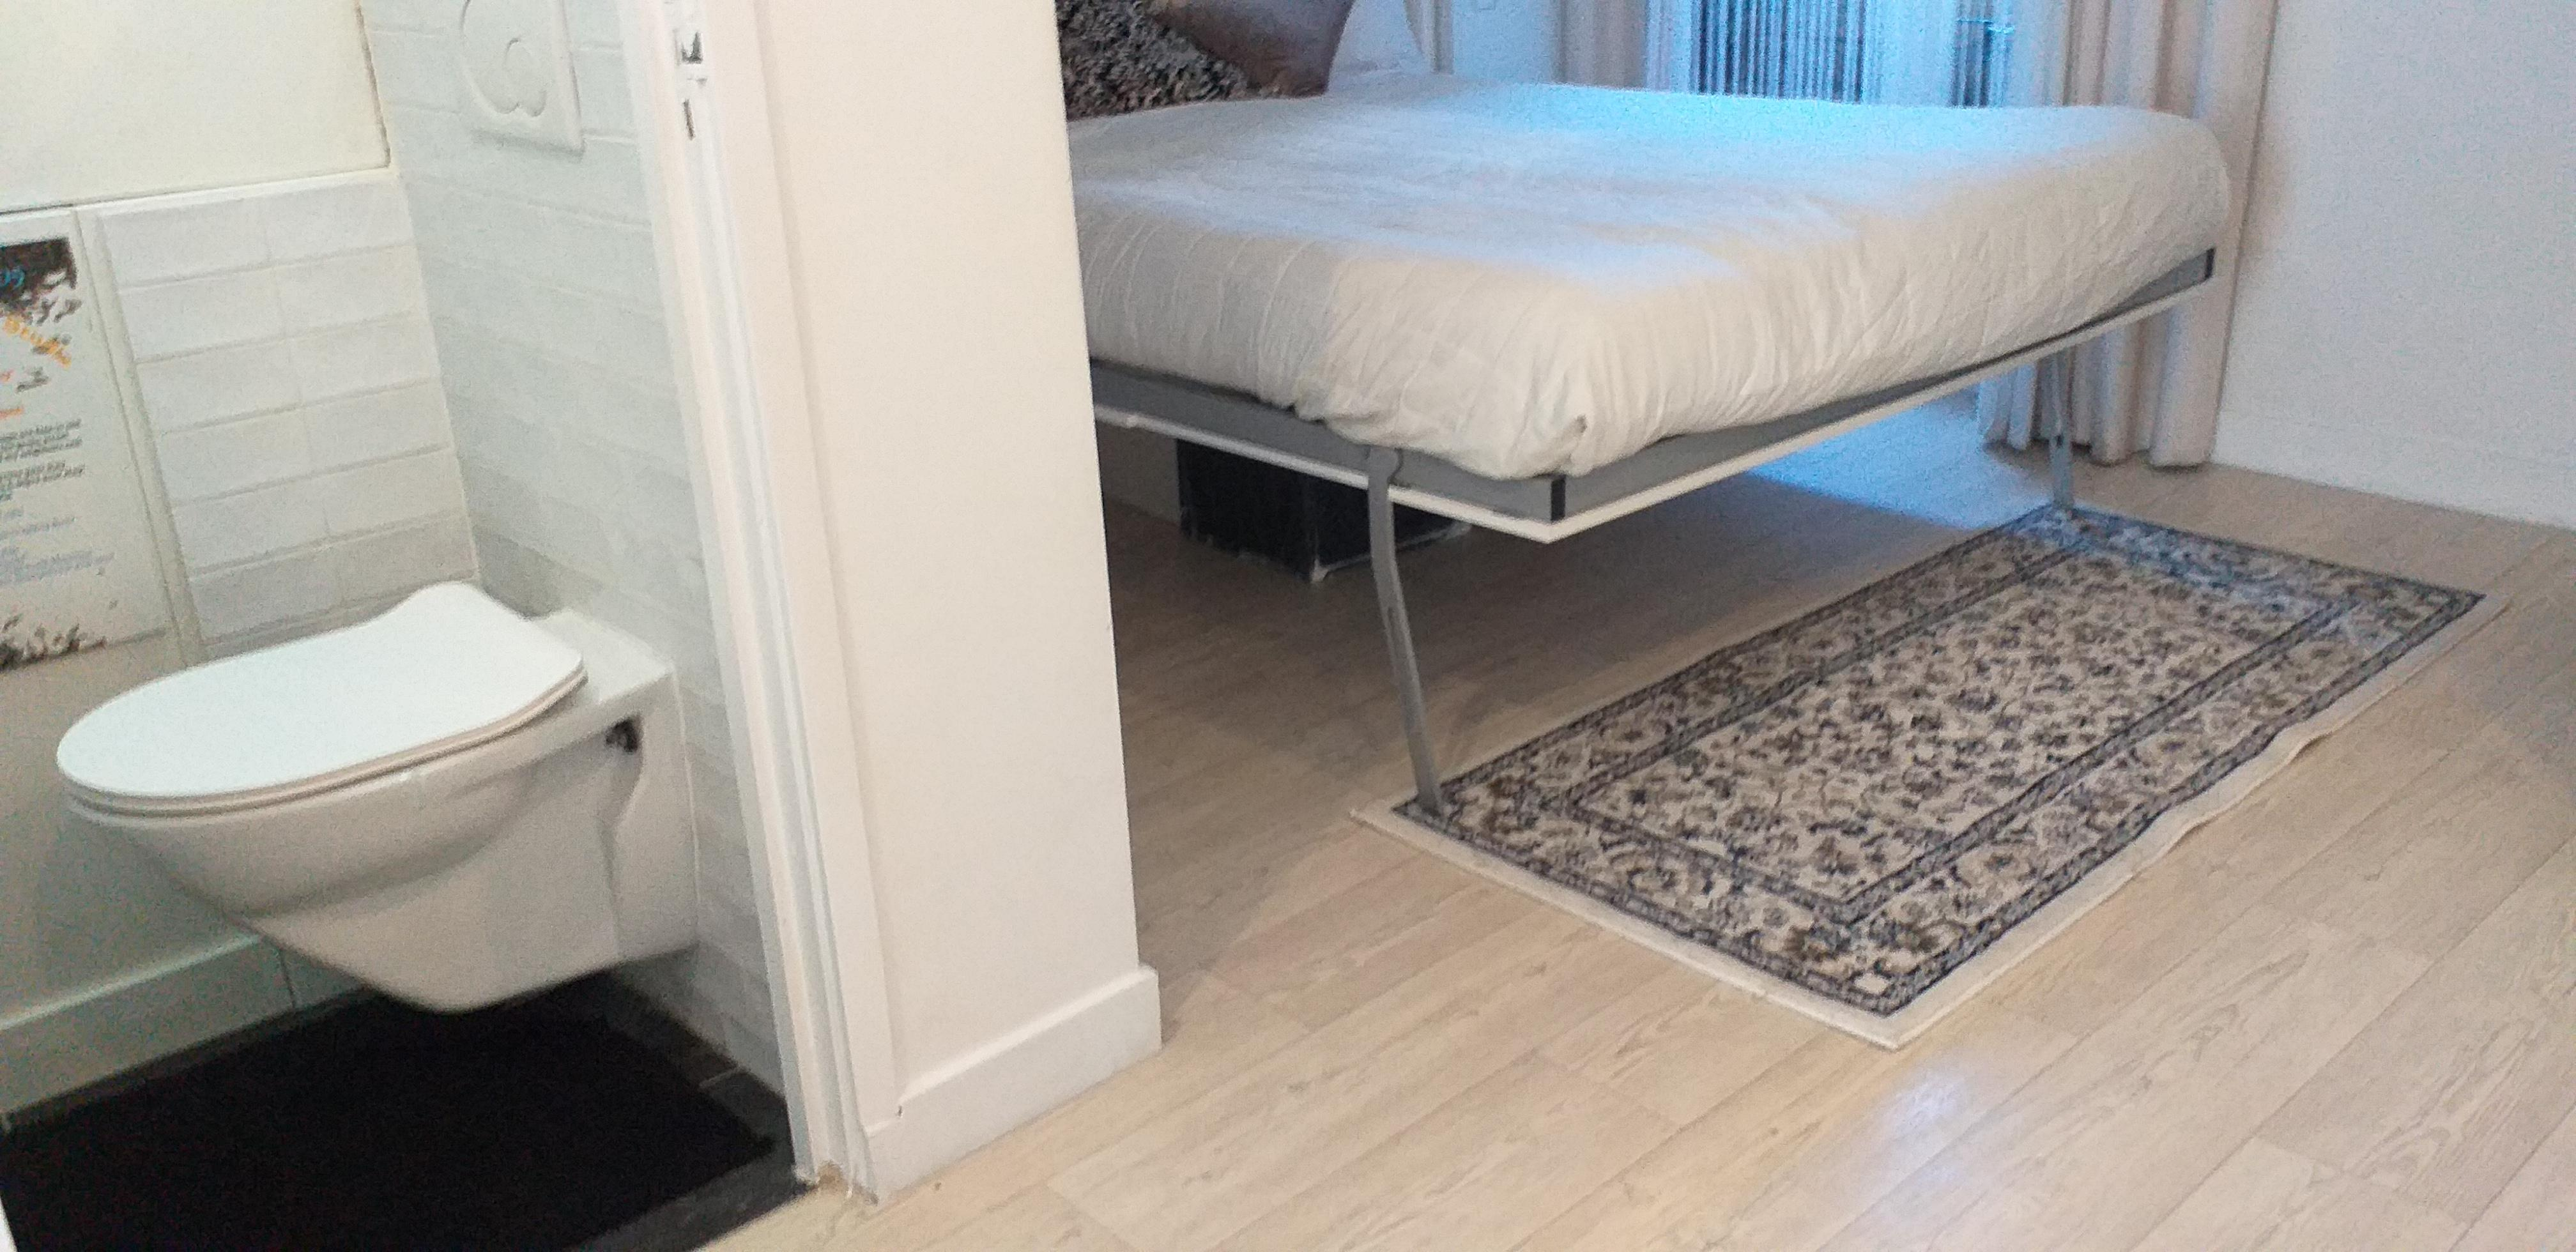 Apartment Clean 4 guest studio 2 KM  from Anne Frank house  3 KM from Dam Square photo 23229756